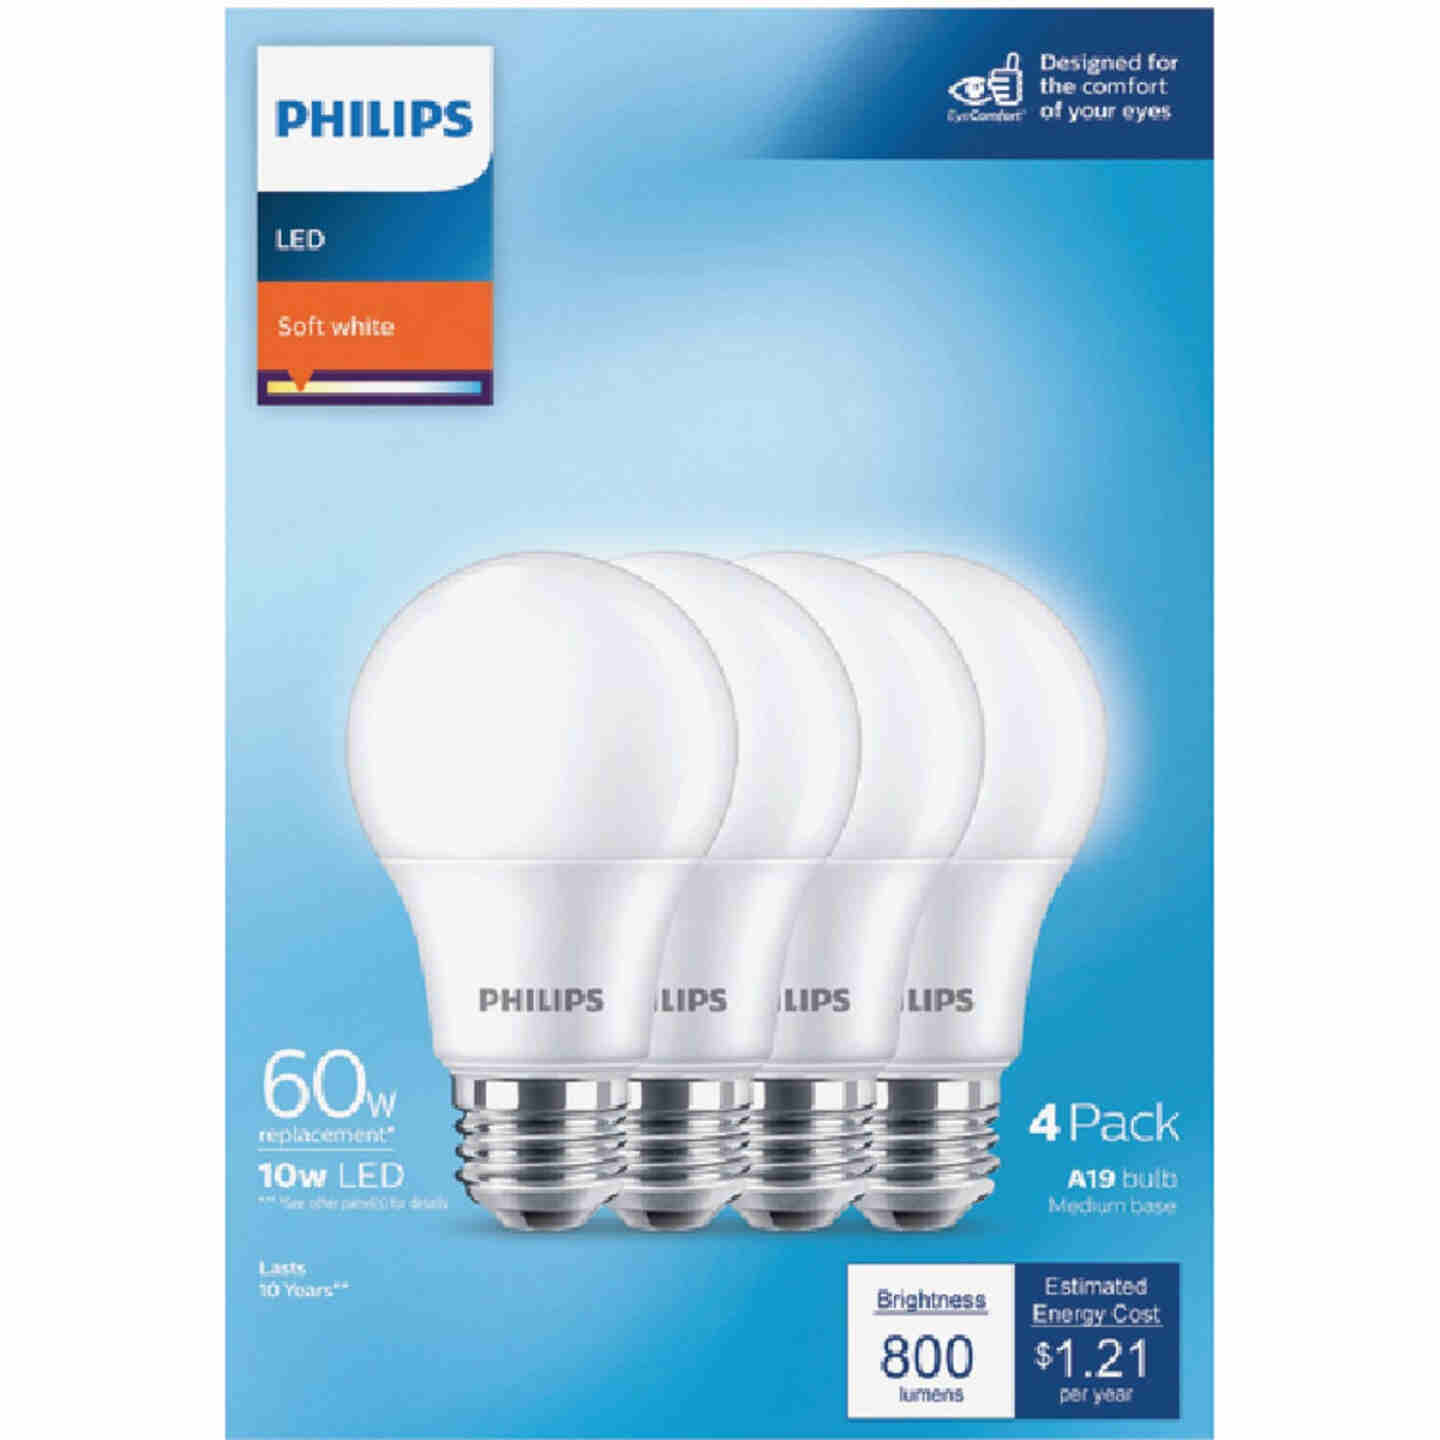 Philips 60W Equivalent Soft White A19 Medium LED Light Bulb (4-Pack) Image 2